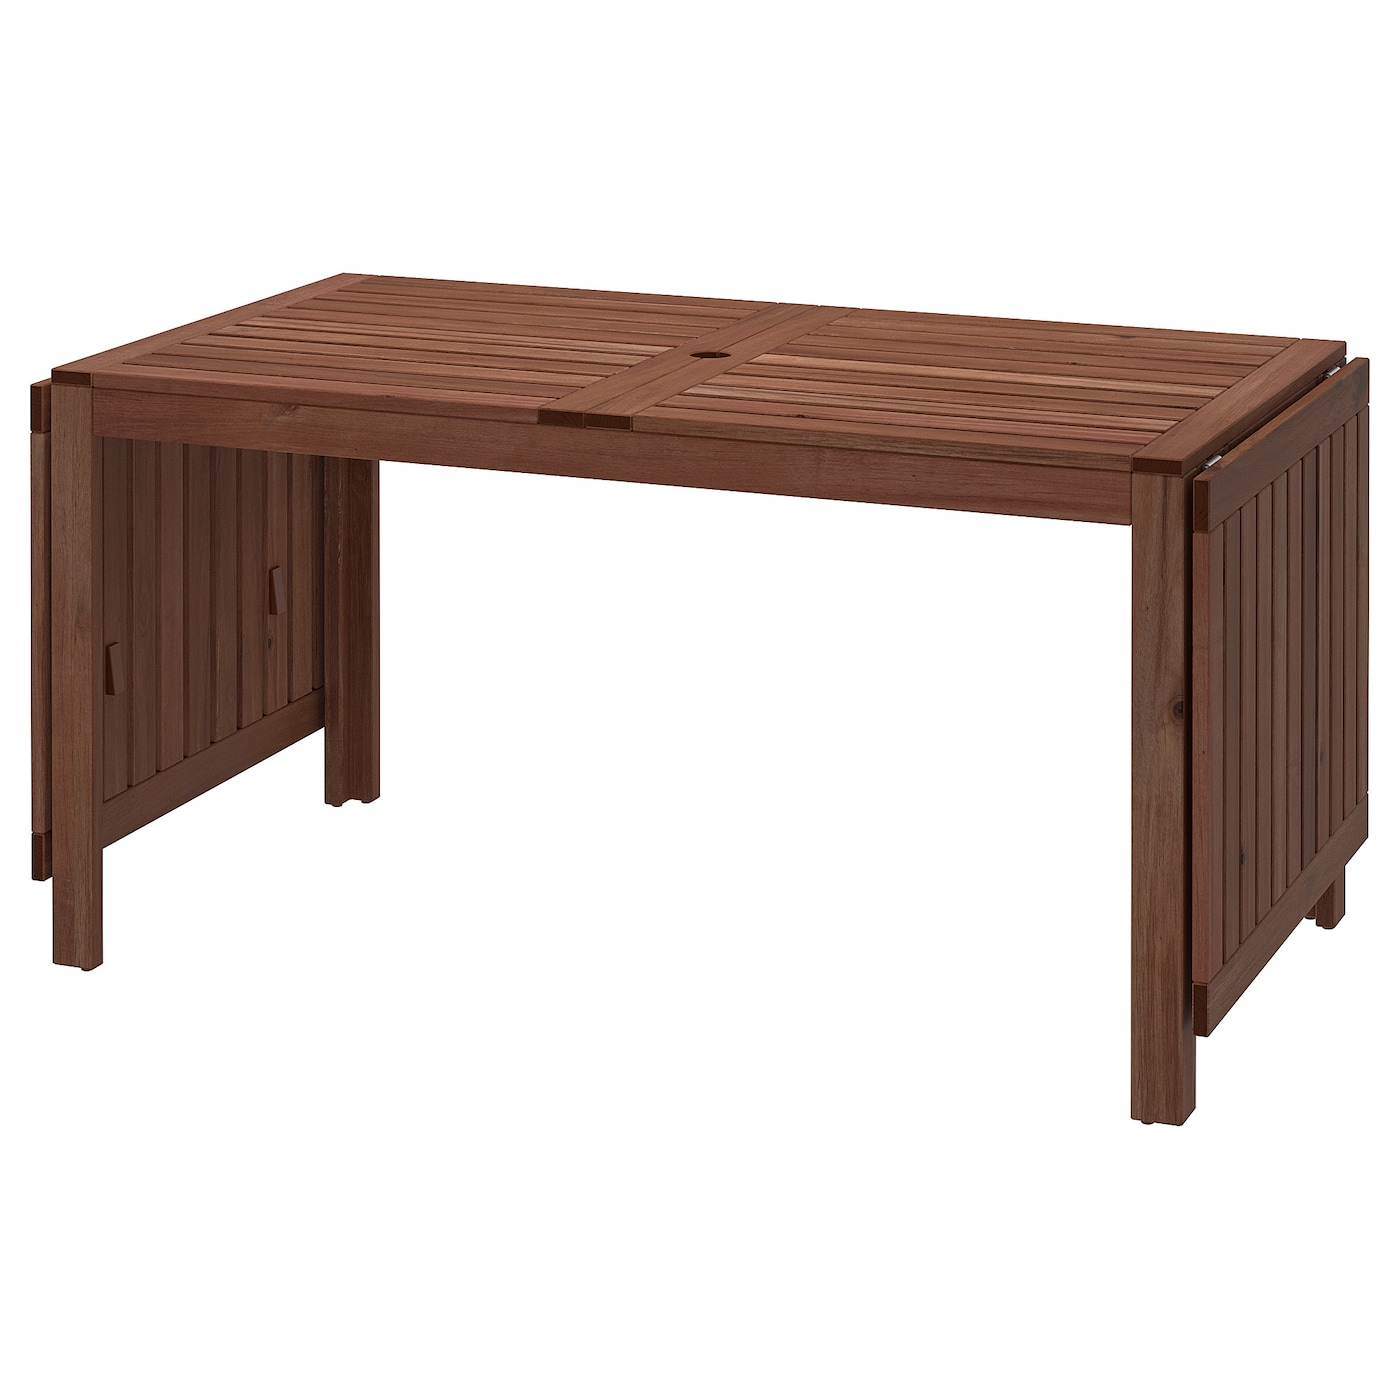 Applaro Drop Leaf Table Outdoor Brown Brown Stained Ikea